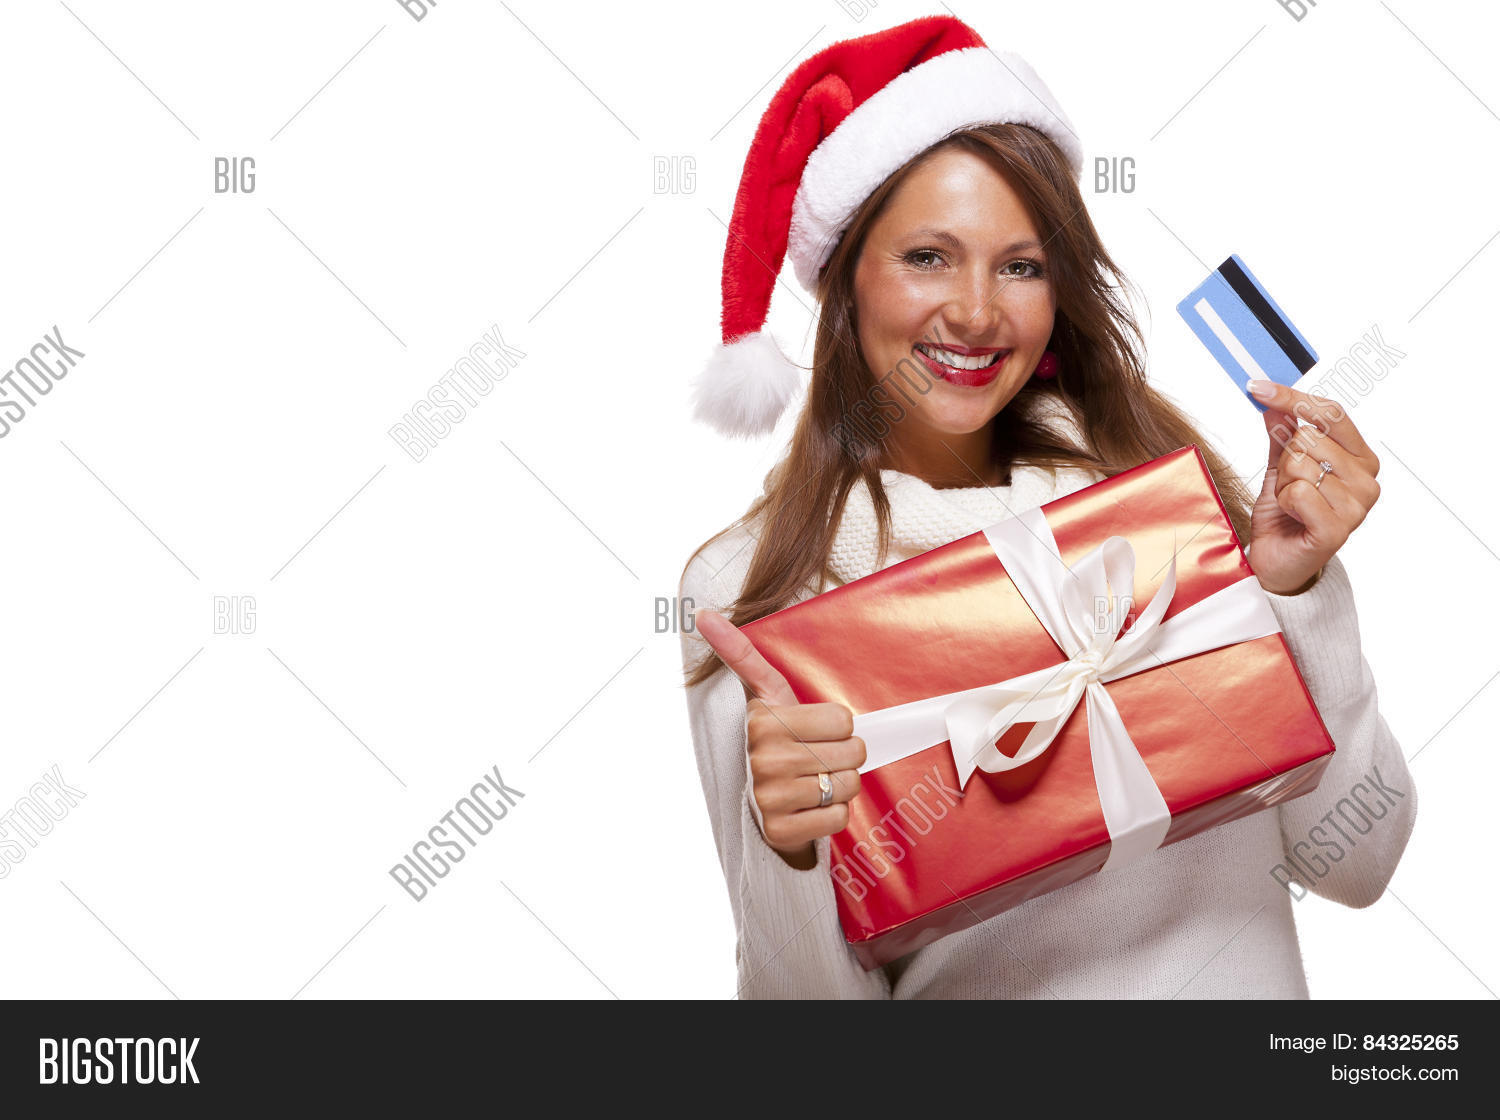 8f65ebd324a26 Smiling woman wearing a red Santa hat purchasing Christmas gifts on a bank  card holding up a colorful red giftwrapped box with a happy smile and a thumbs  up ...